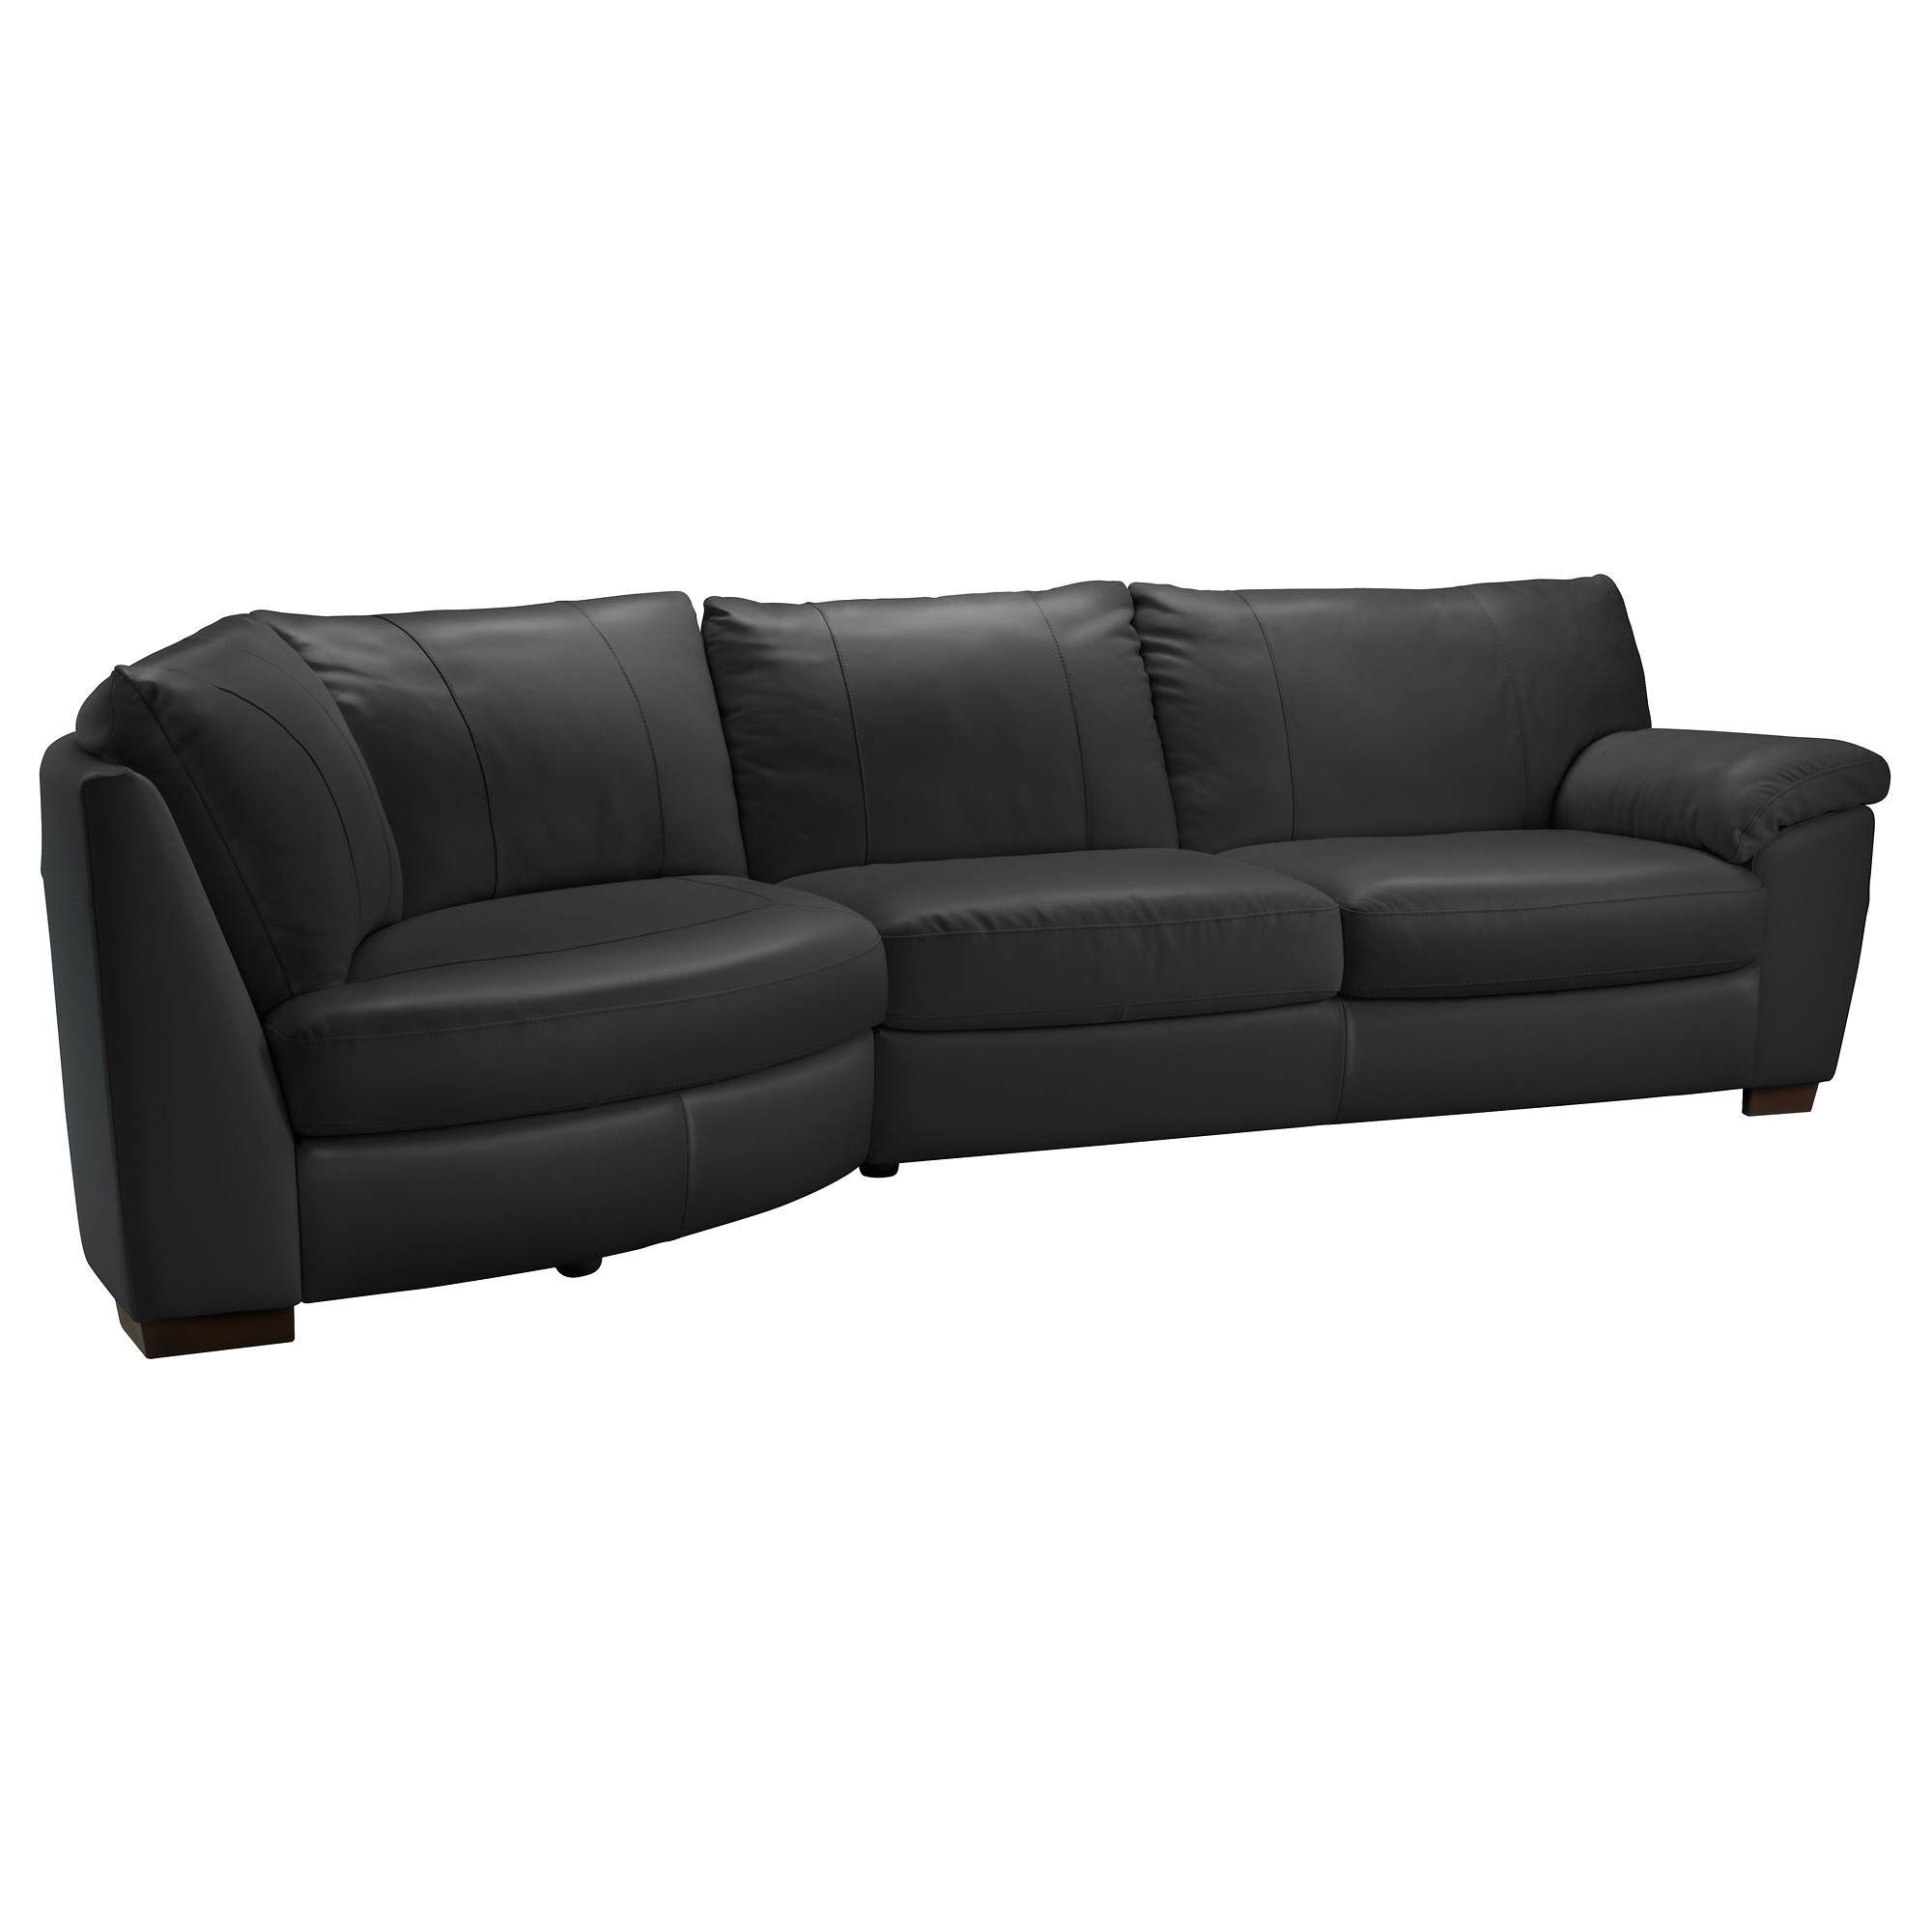 Vreta Corner Sofa With End Unit Right – Mjuk Ivory – Ikea $1749 Regarding Well Liked Kijiji London Sectional Sofas (View 20 of 20)